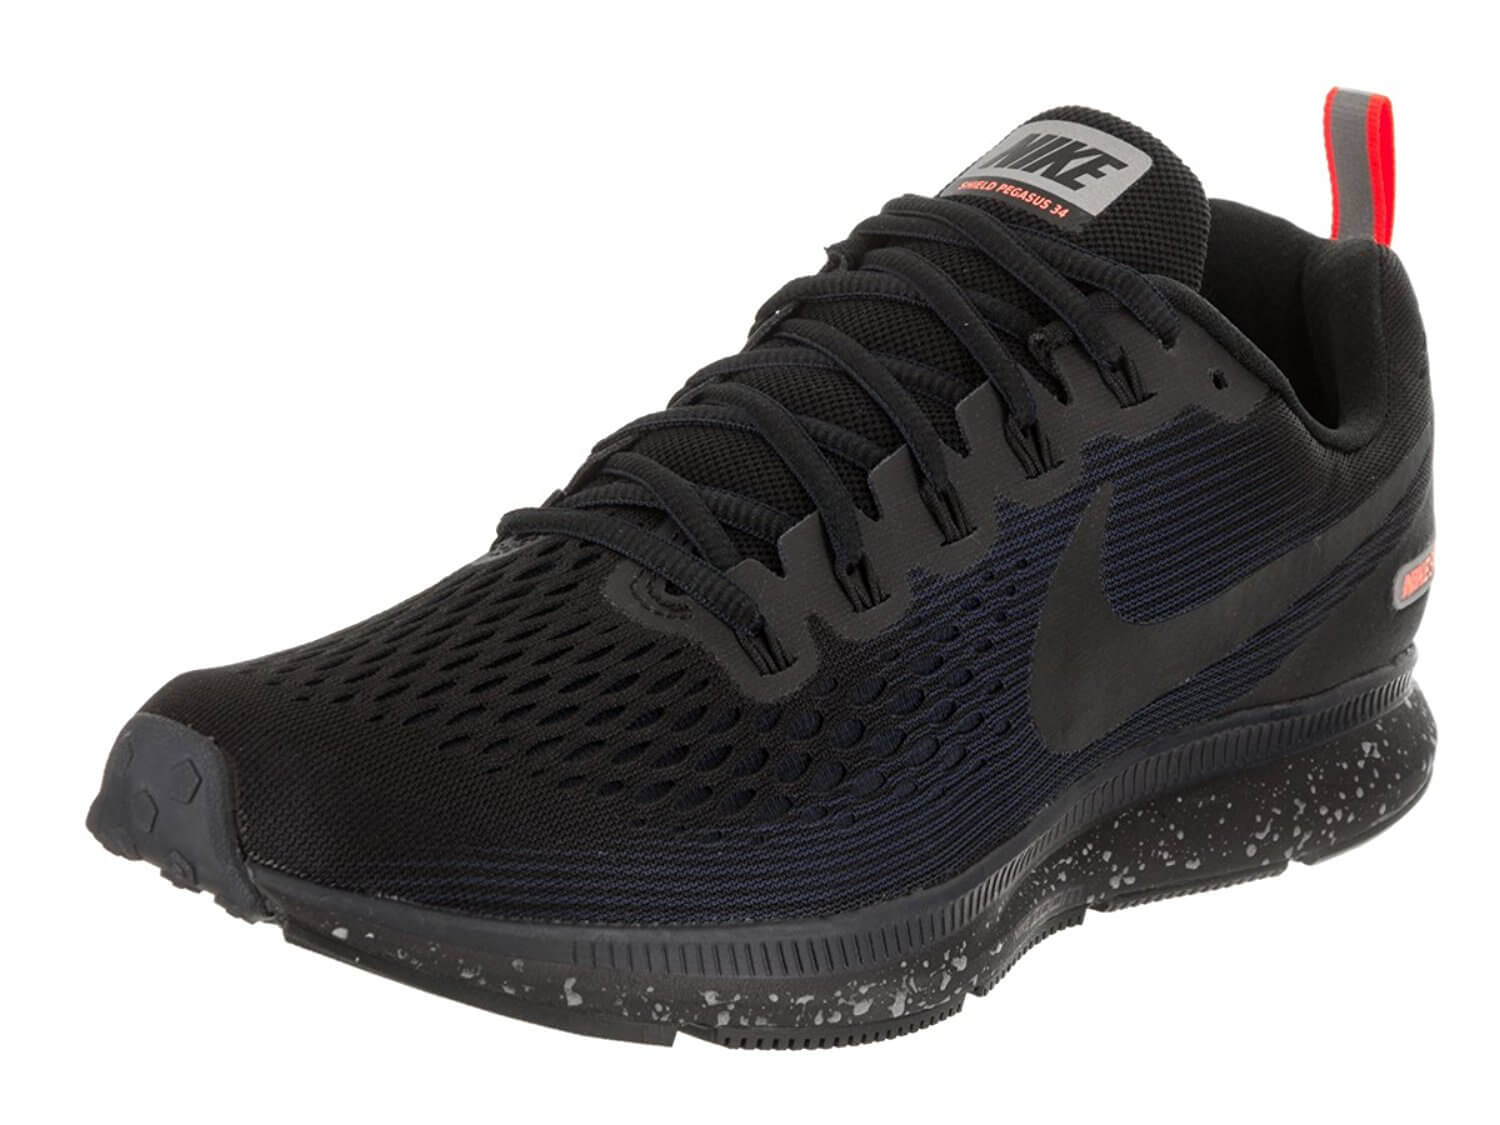 91252109f5b7 Nike Air Zoom Pegasus 34 Shield - in Apr 2019